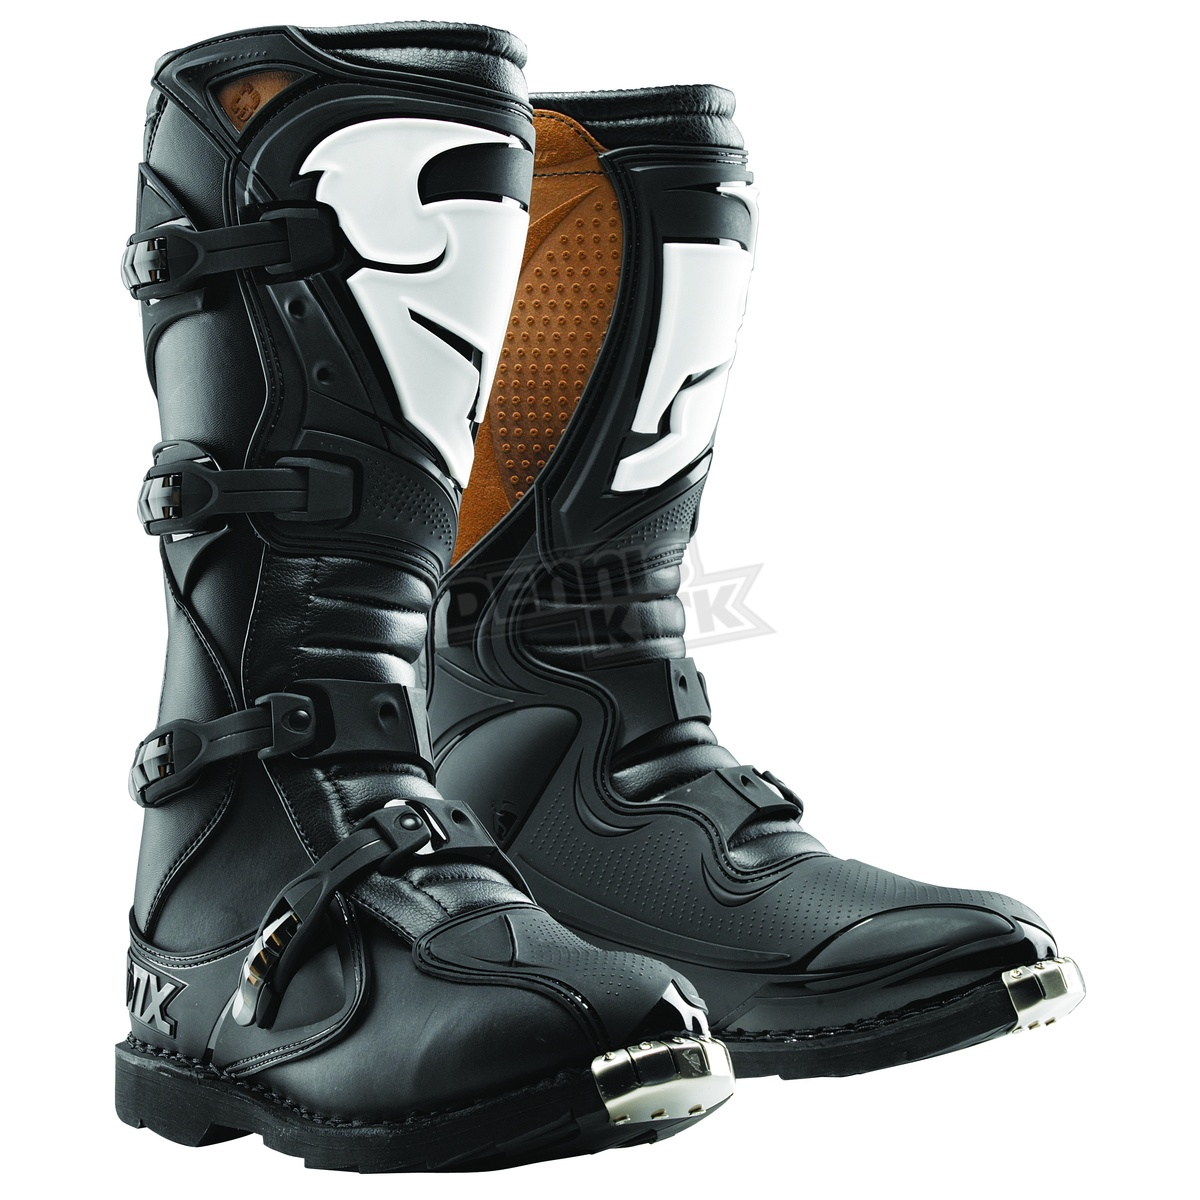 bottes moto quad bottes tout terrain bottes moto cross. Black Bedroom Furniture Sets. Home Design Ideas